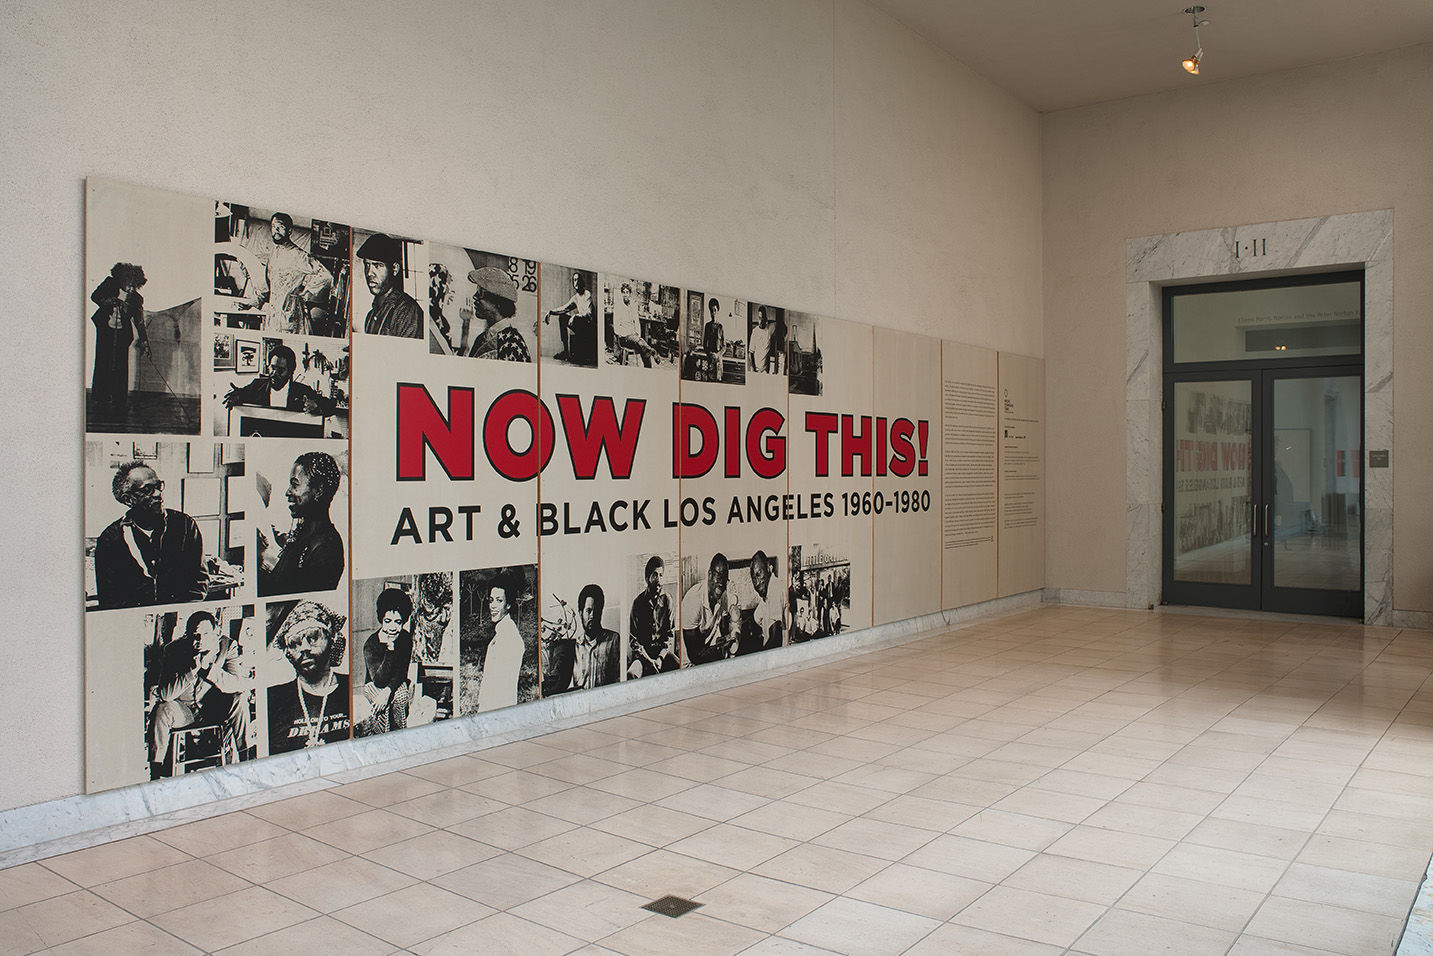 Exhibition entryway sign. Installation view at the Hammer Museum, Los Angeles